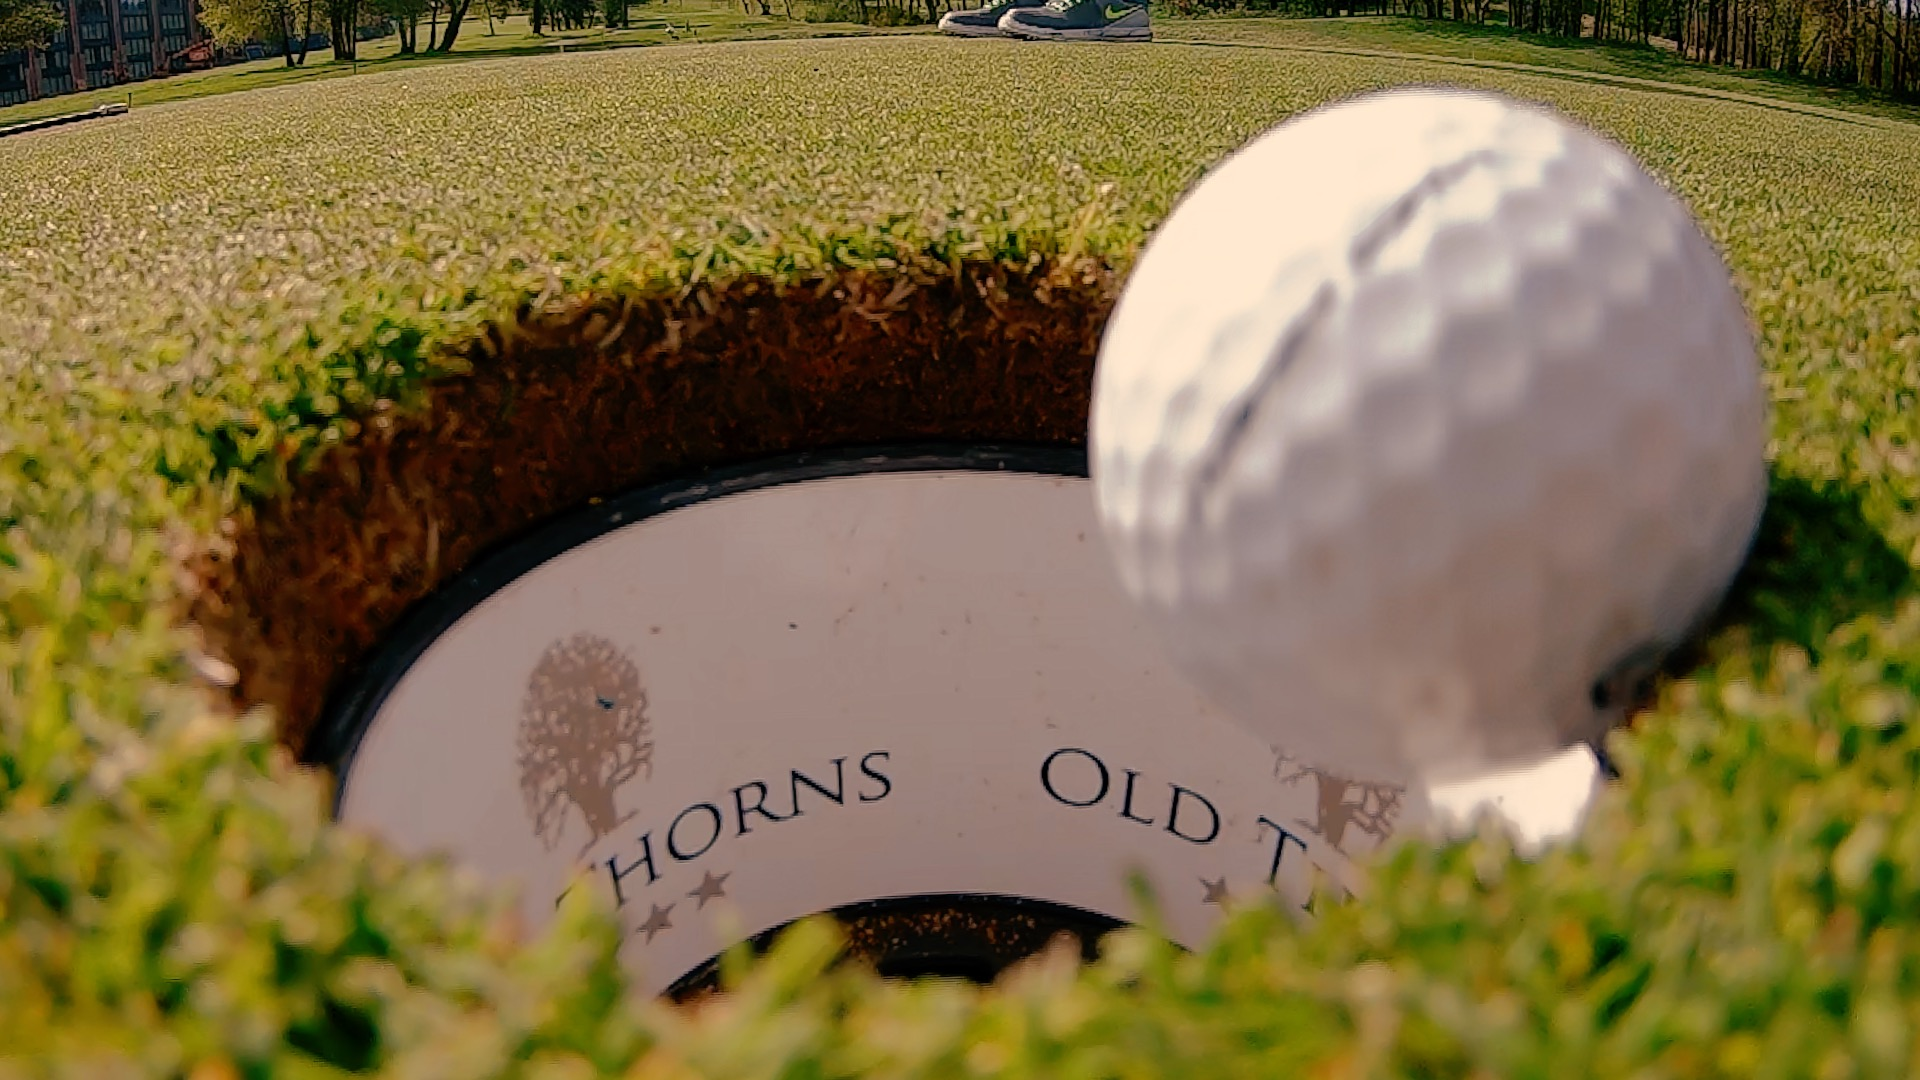 Following the success of last years Oakstone Partners' Golf Day, Oakstone are hosting a similar event this year to show appreciation to our partners'. Our invitations have gone out and we are excited about the event taking place April 2019.